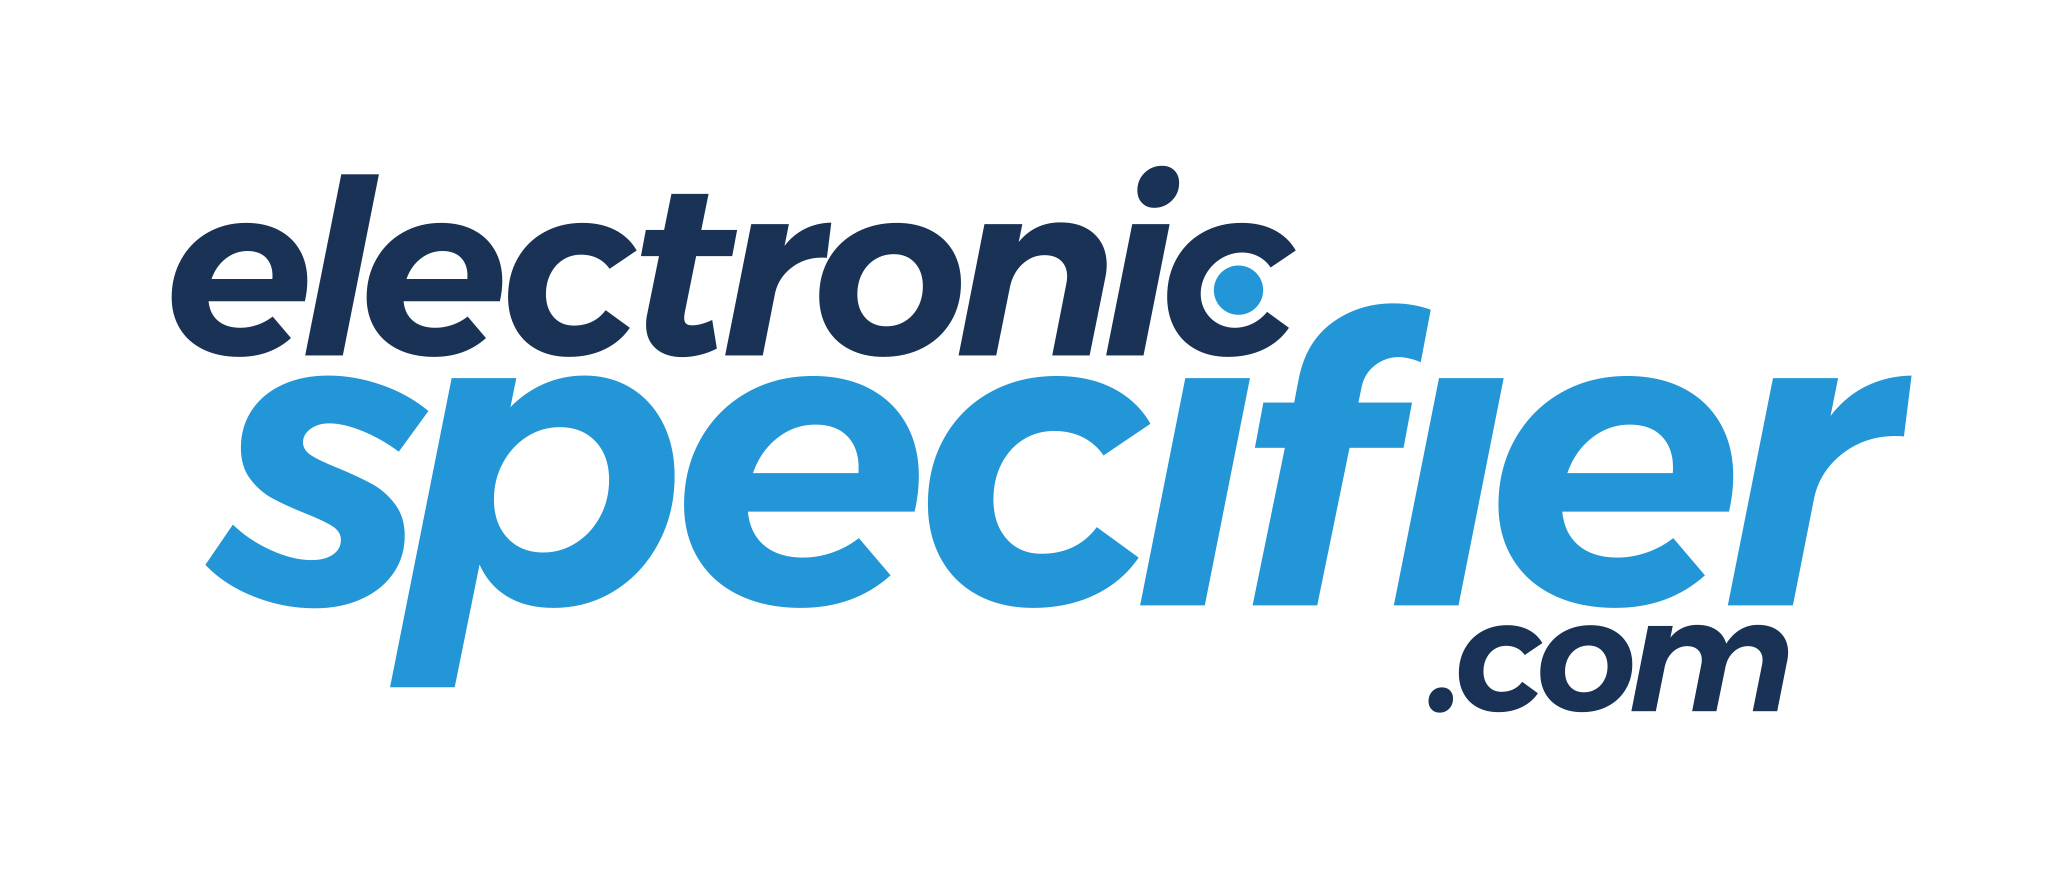 Electronic Specifier is Europe's premier publisher of information resources to the Global Electronics Industry.